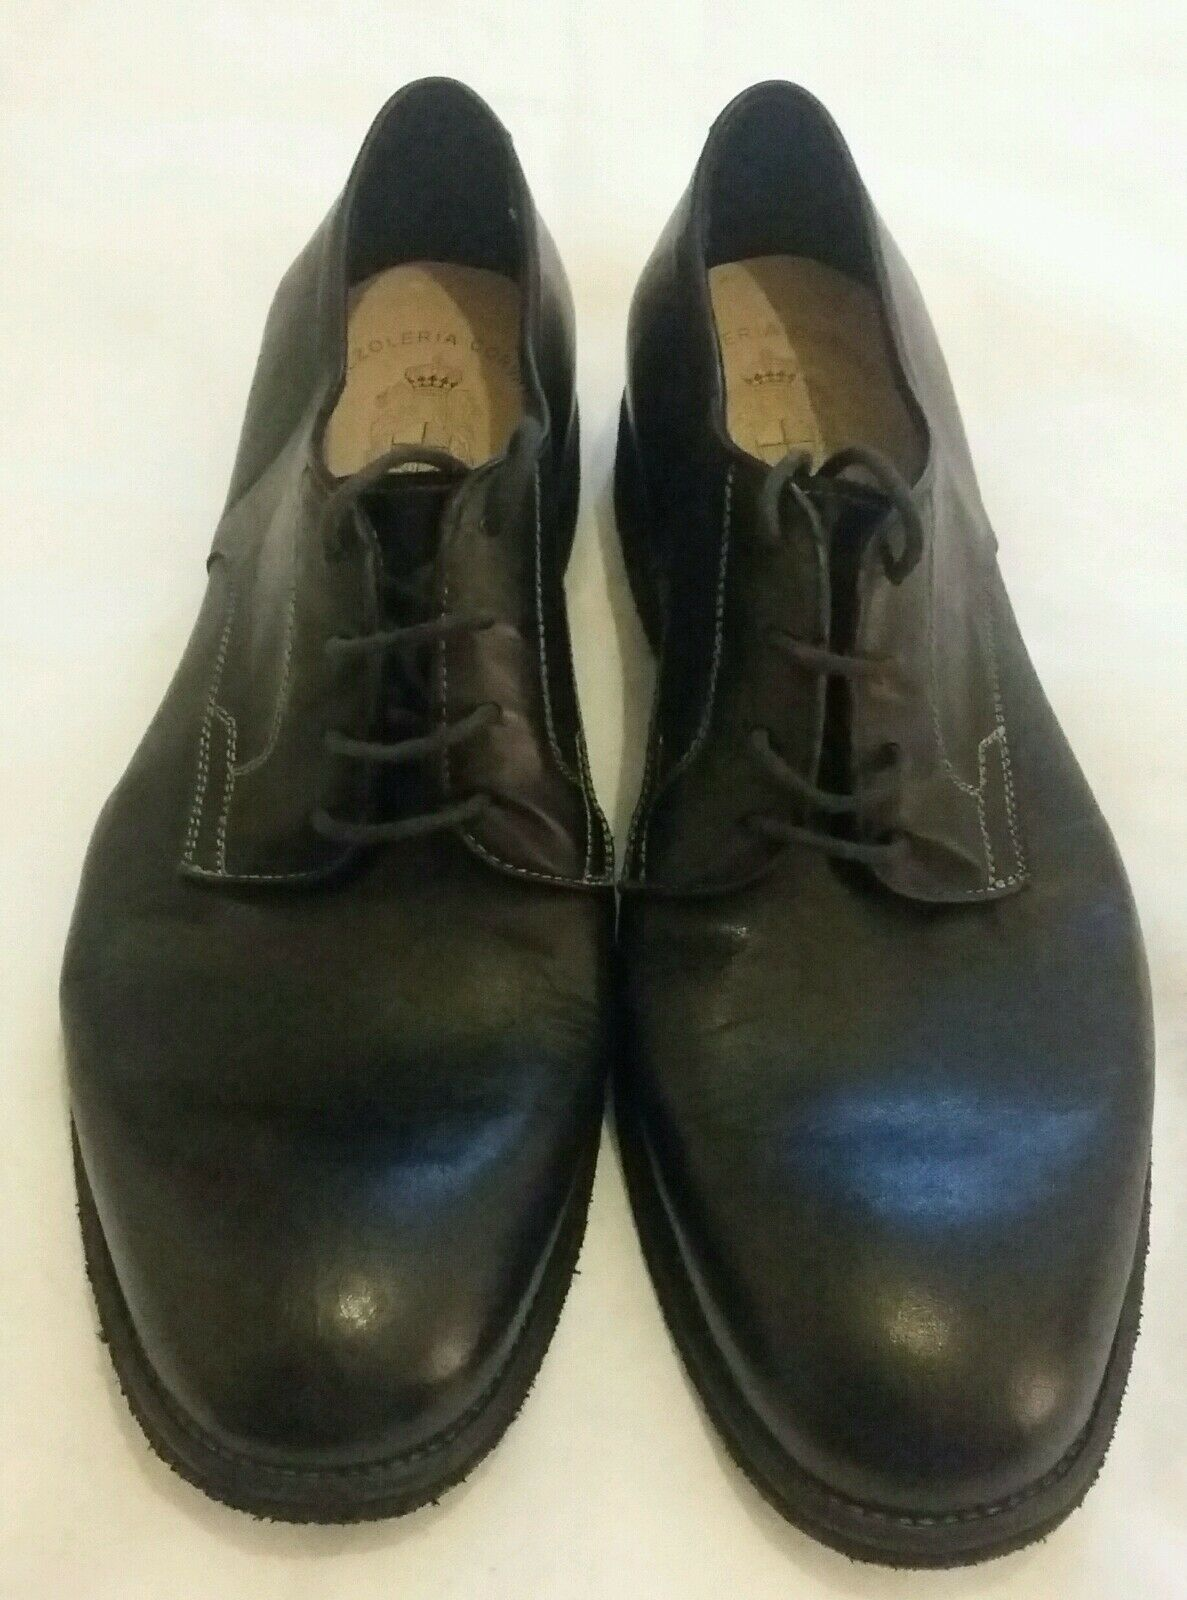 CALZOLERIA CORVARI Vintage Style Lace-up  Black shoes Size uk 8.5 eu 42